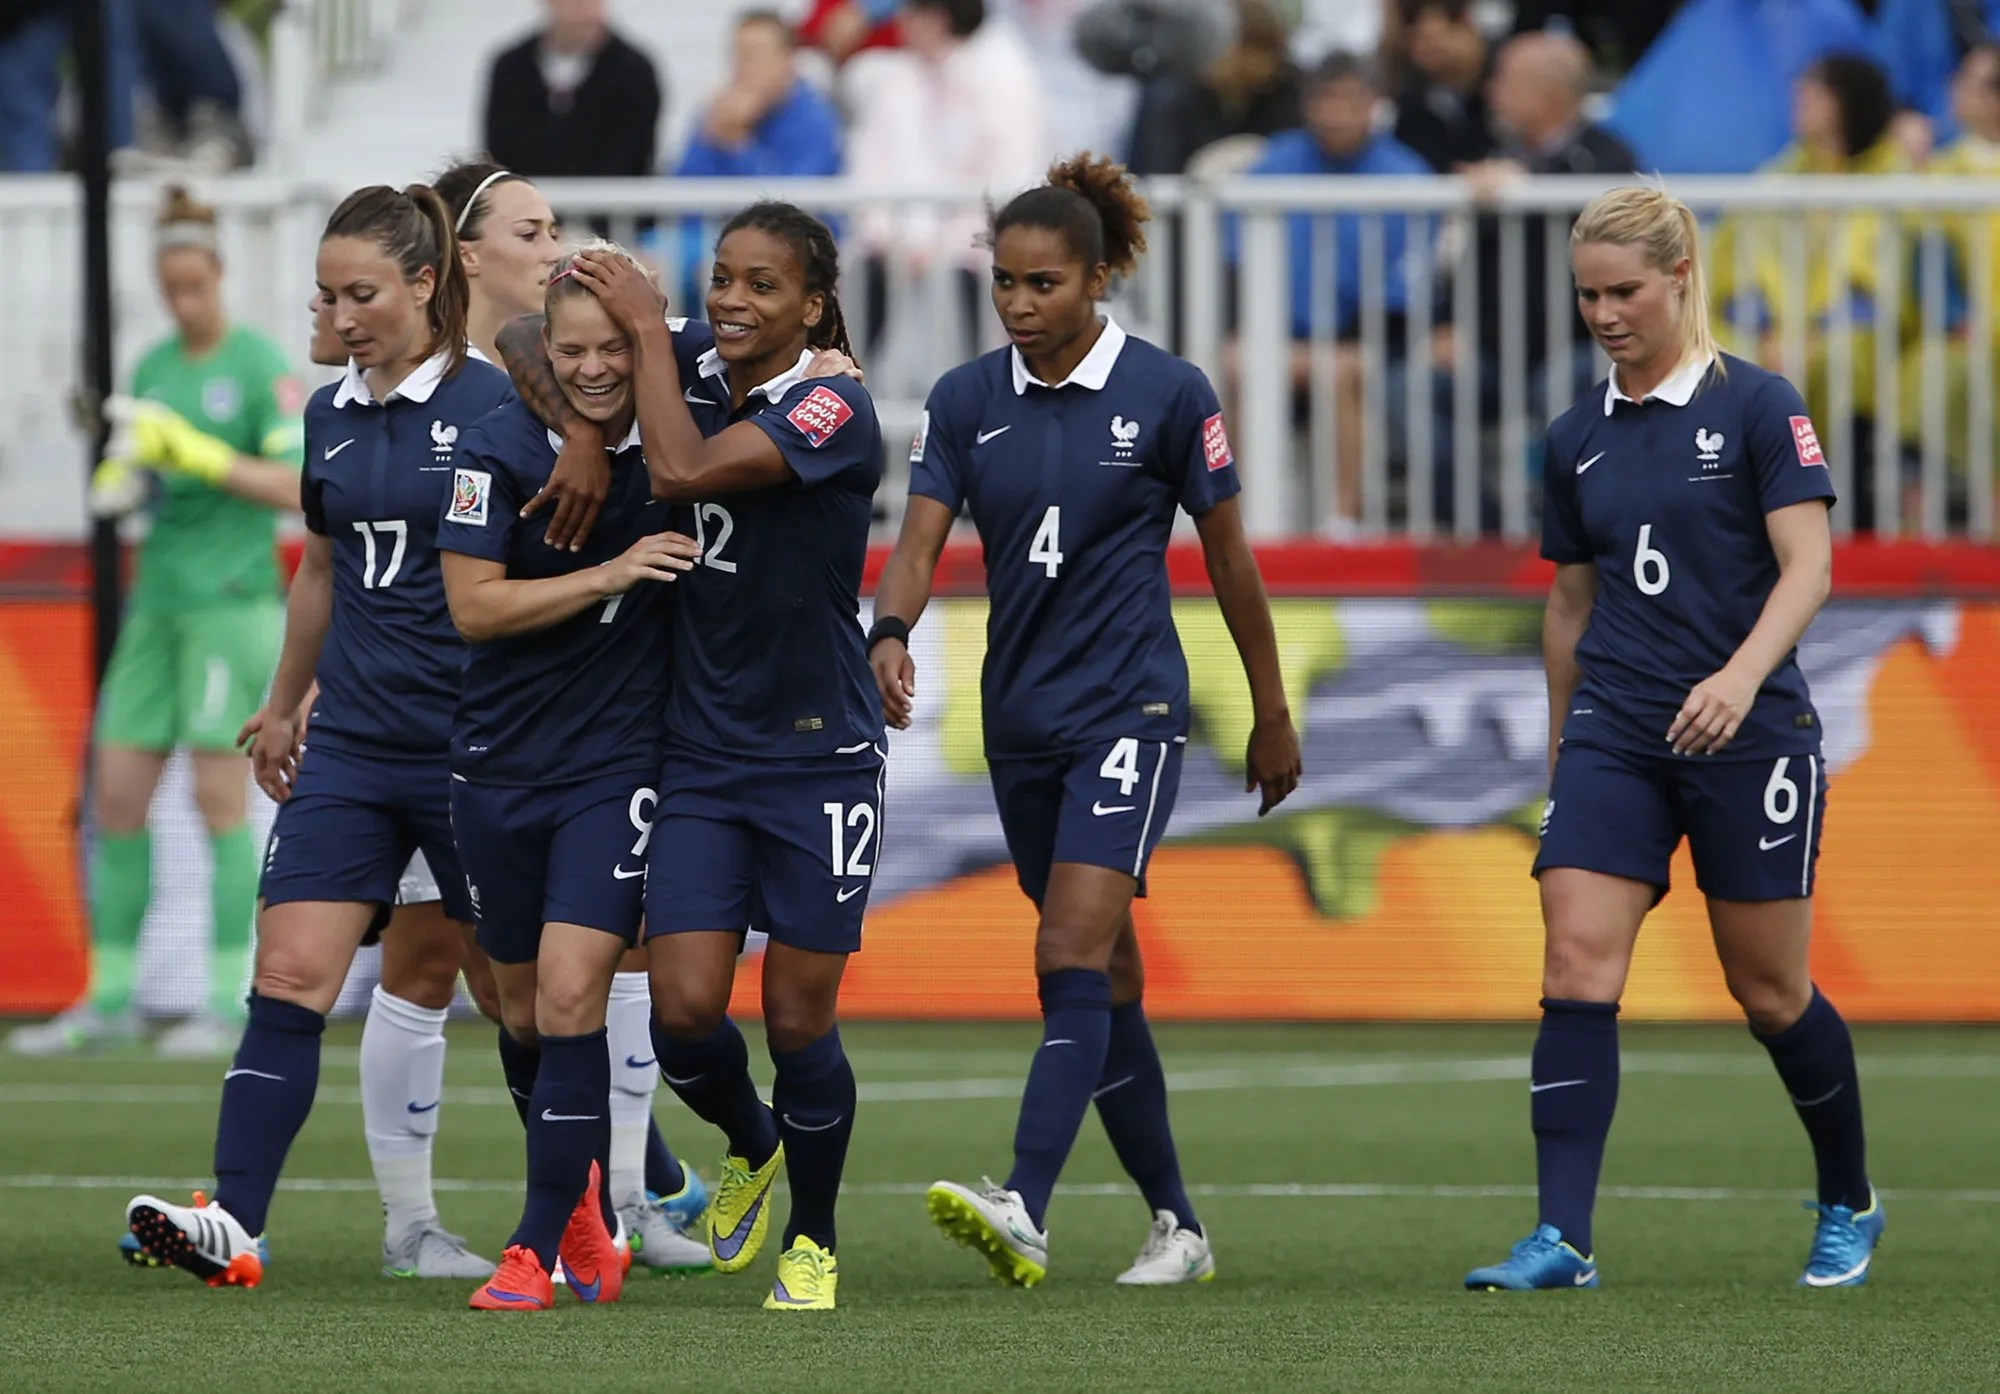 Only 46 of those players can dress in uniform and play in a game. French Women Are Taking Over Soccer The New Yorker